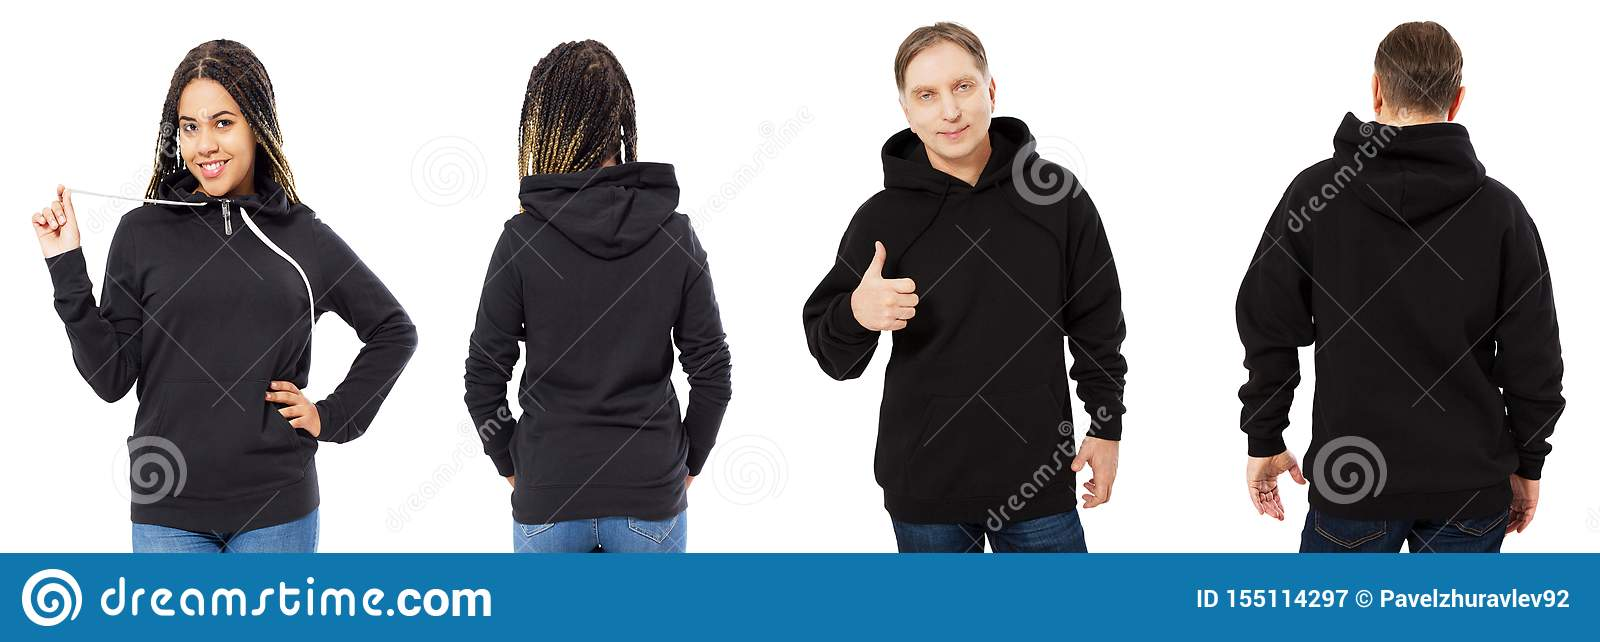 Black woman in hoodie mockup, man in empty hood front and back view isolated over white, hoodie set female and male